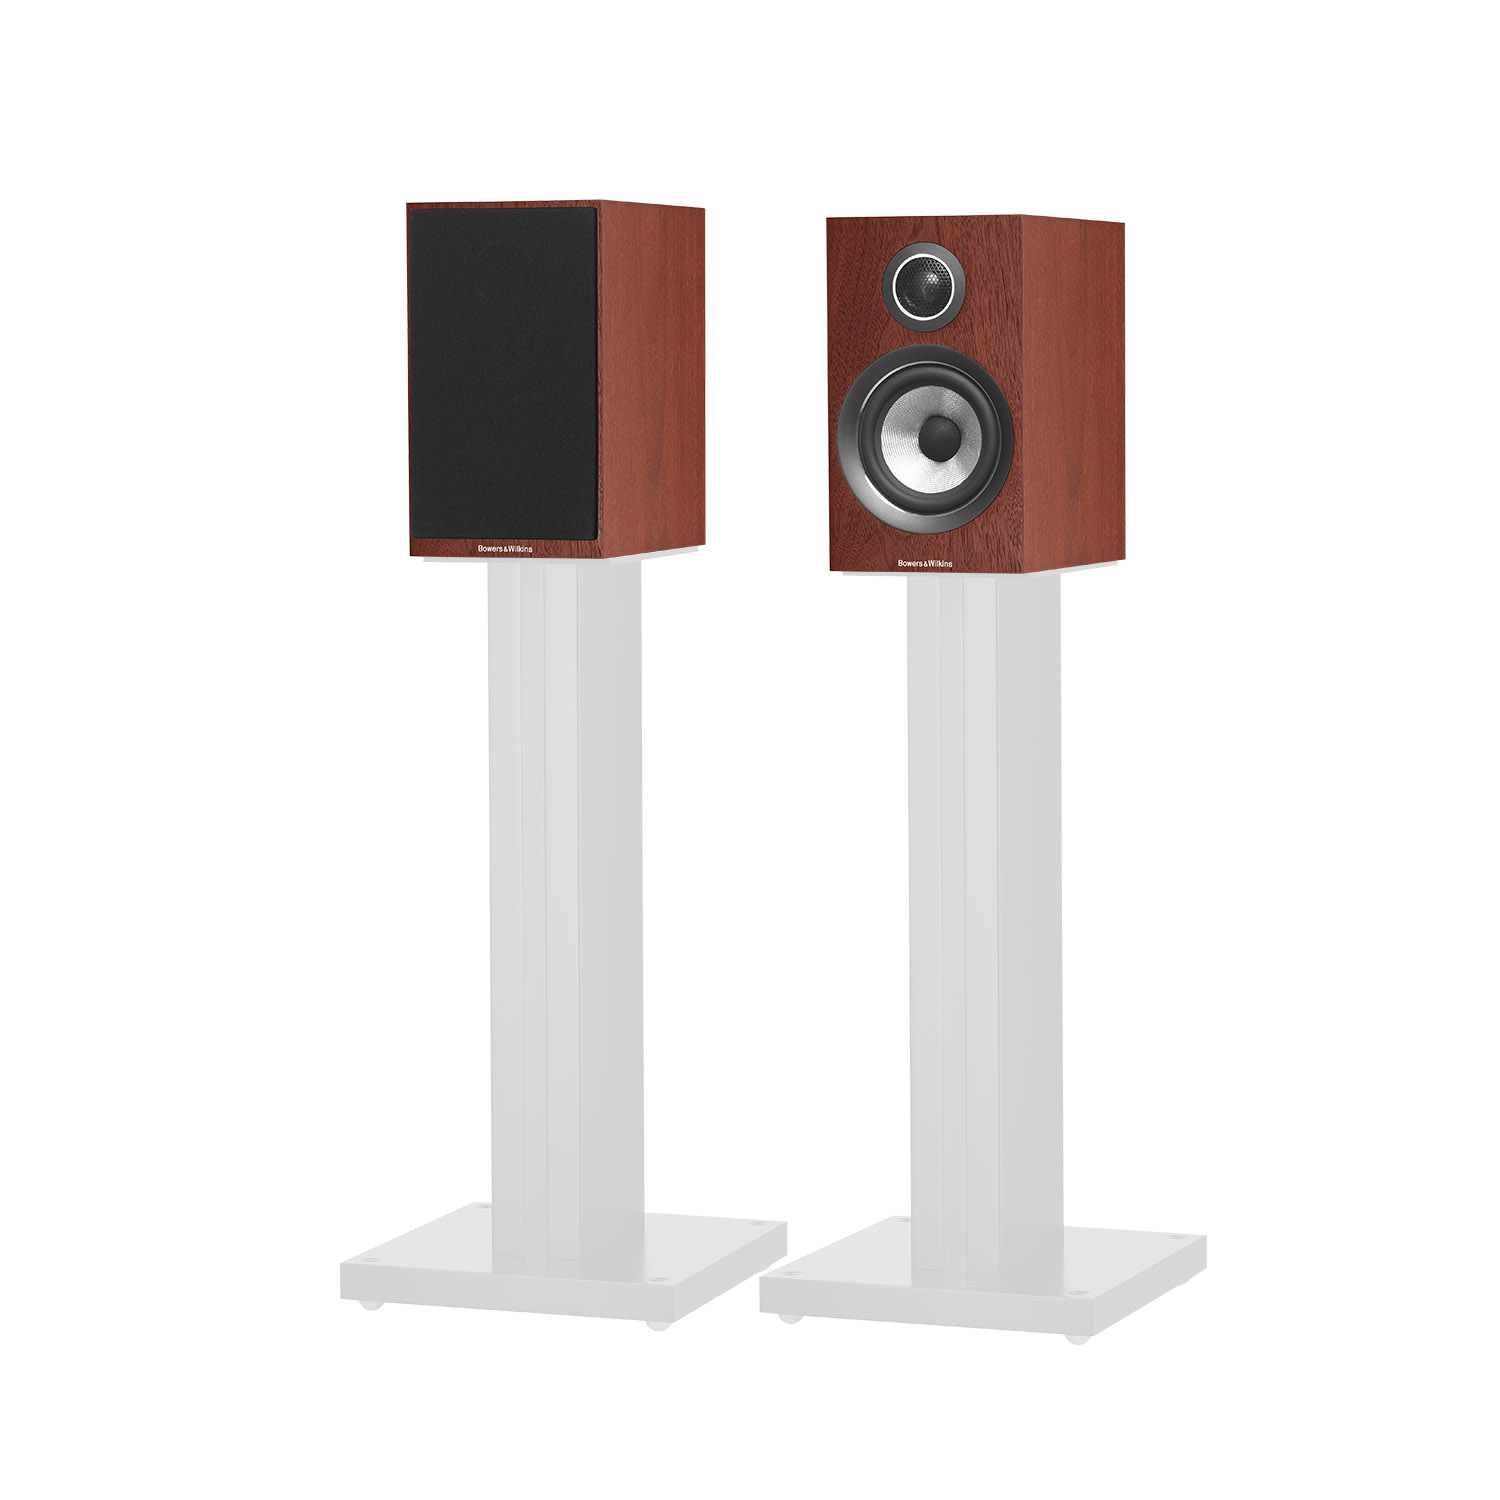 Bowers & Wilkins B&W 707 S2 luidspreker set